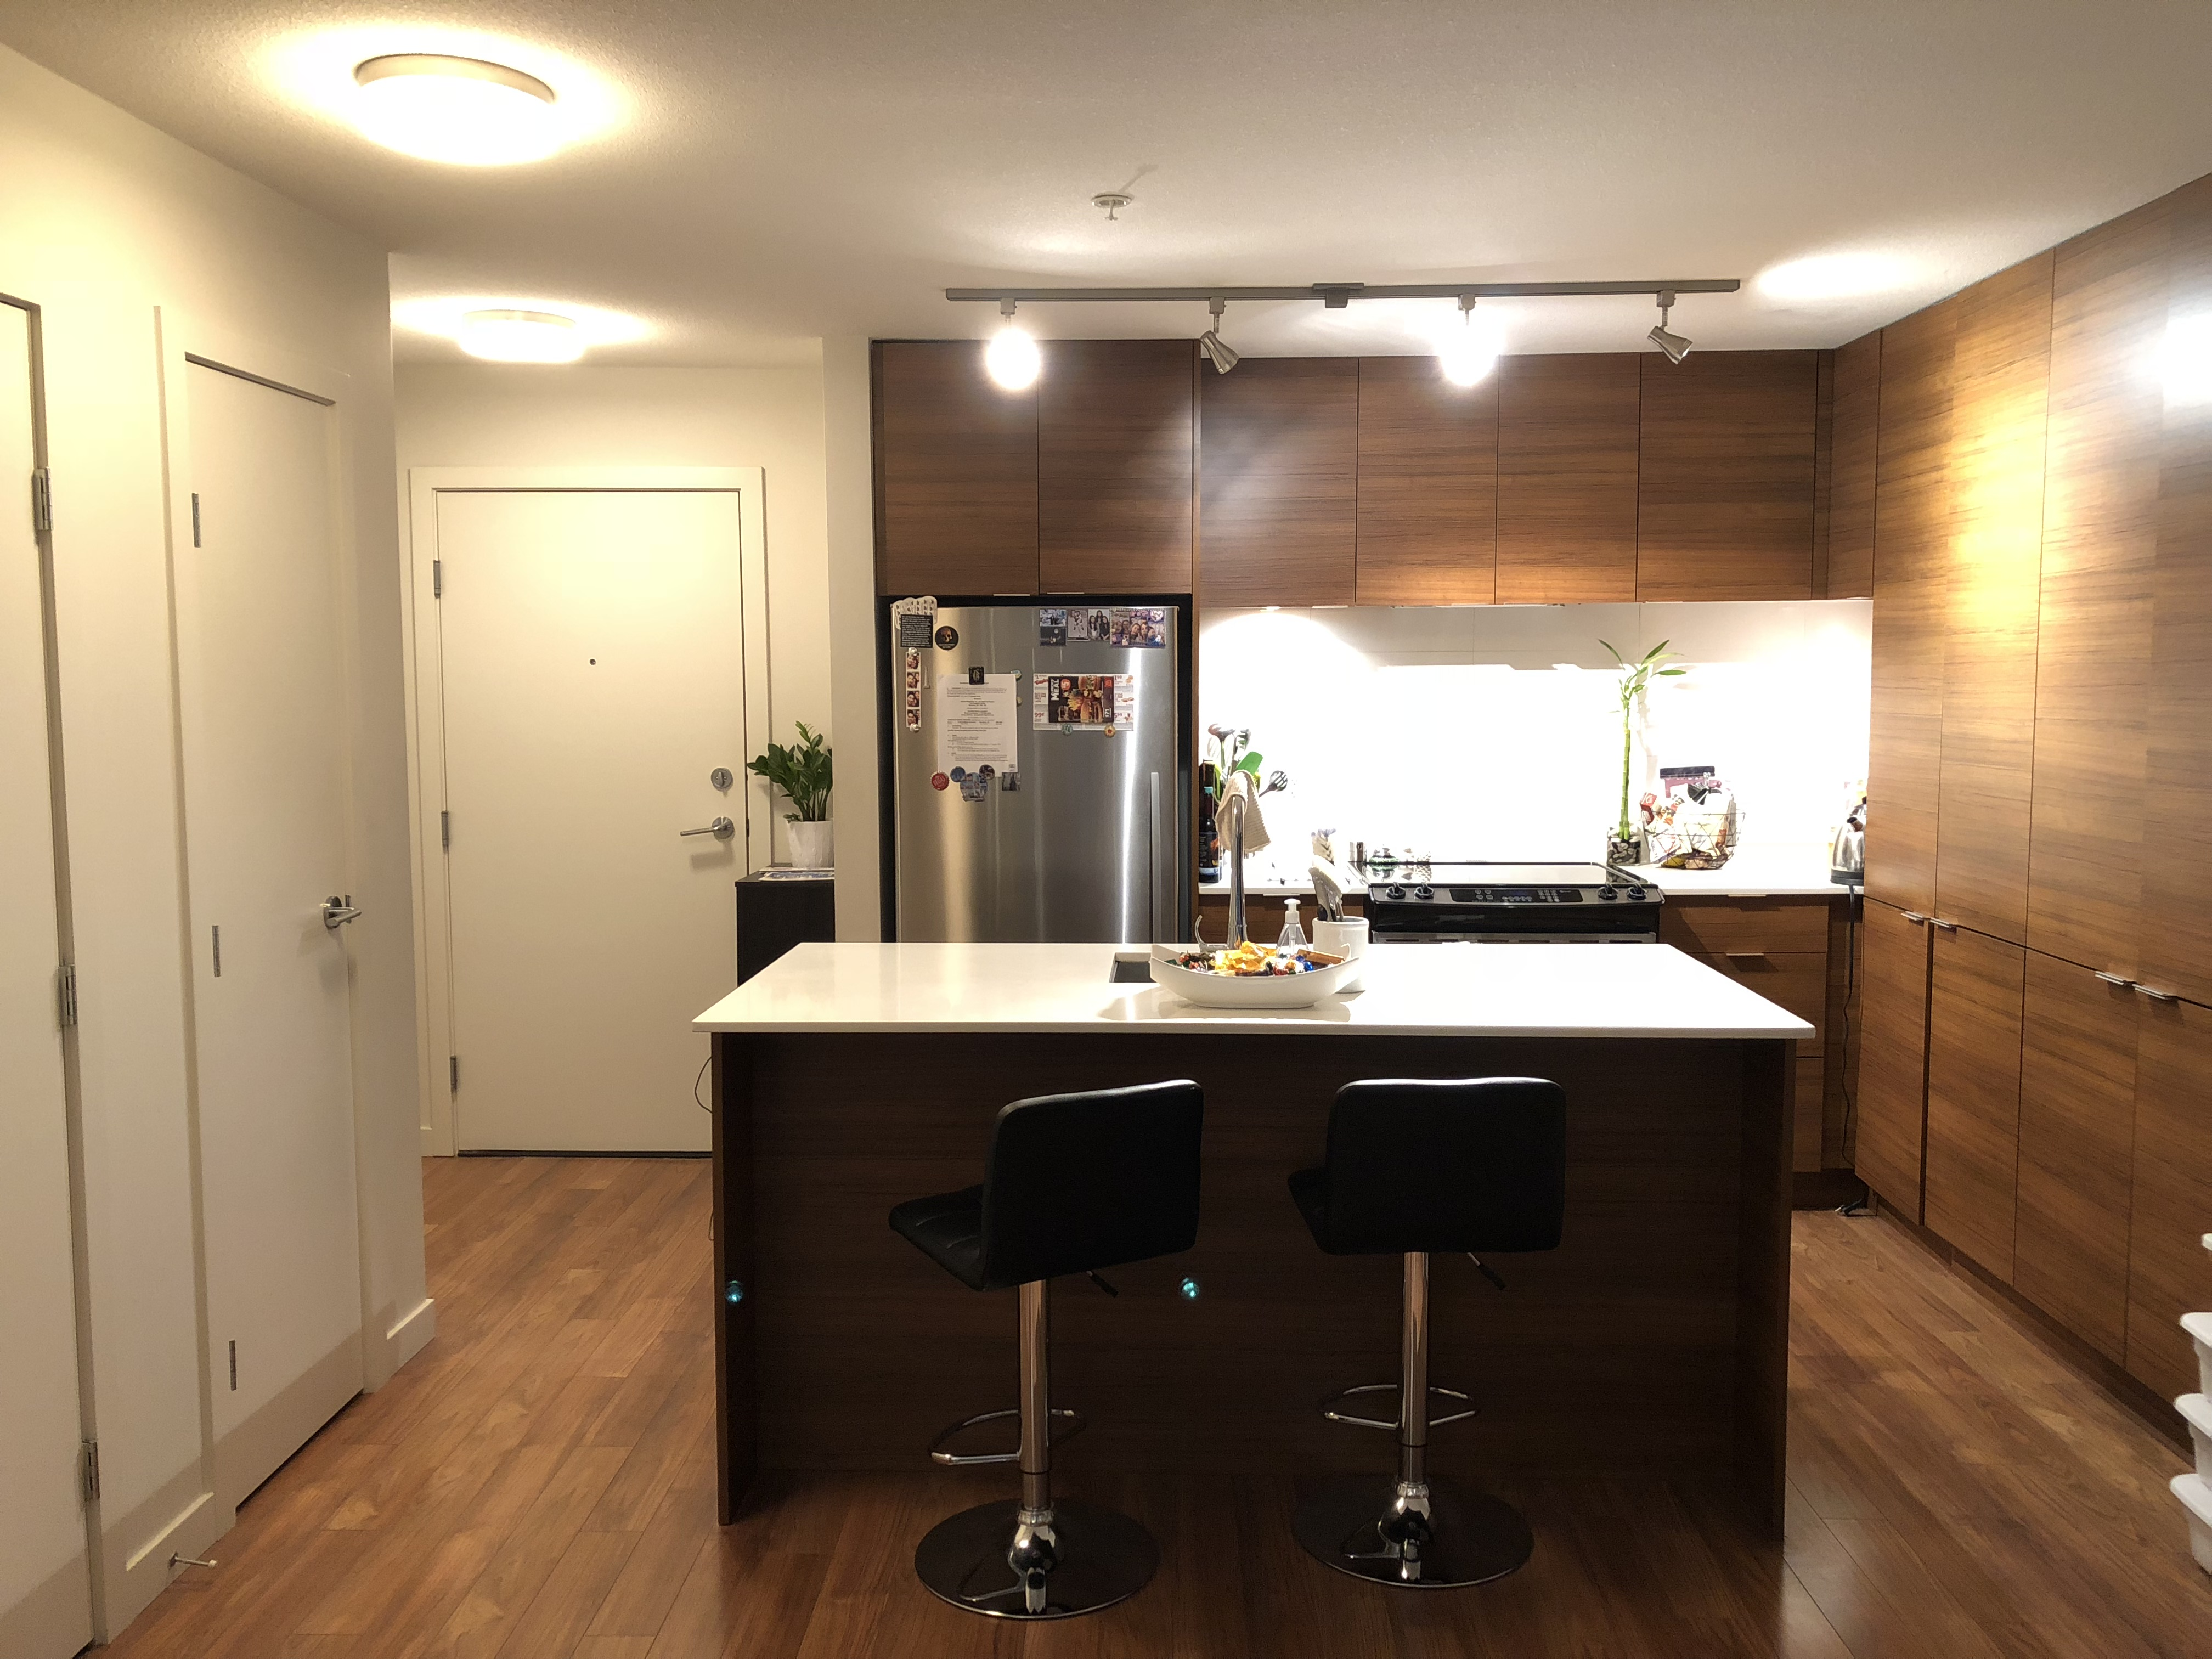 1 Bed/ 1 Bath Condo at the Dristrict Crossing in North Vancouver